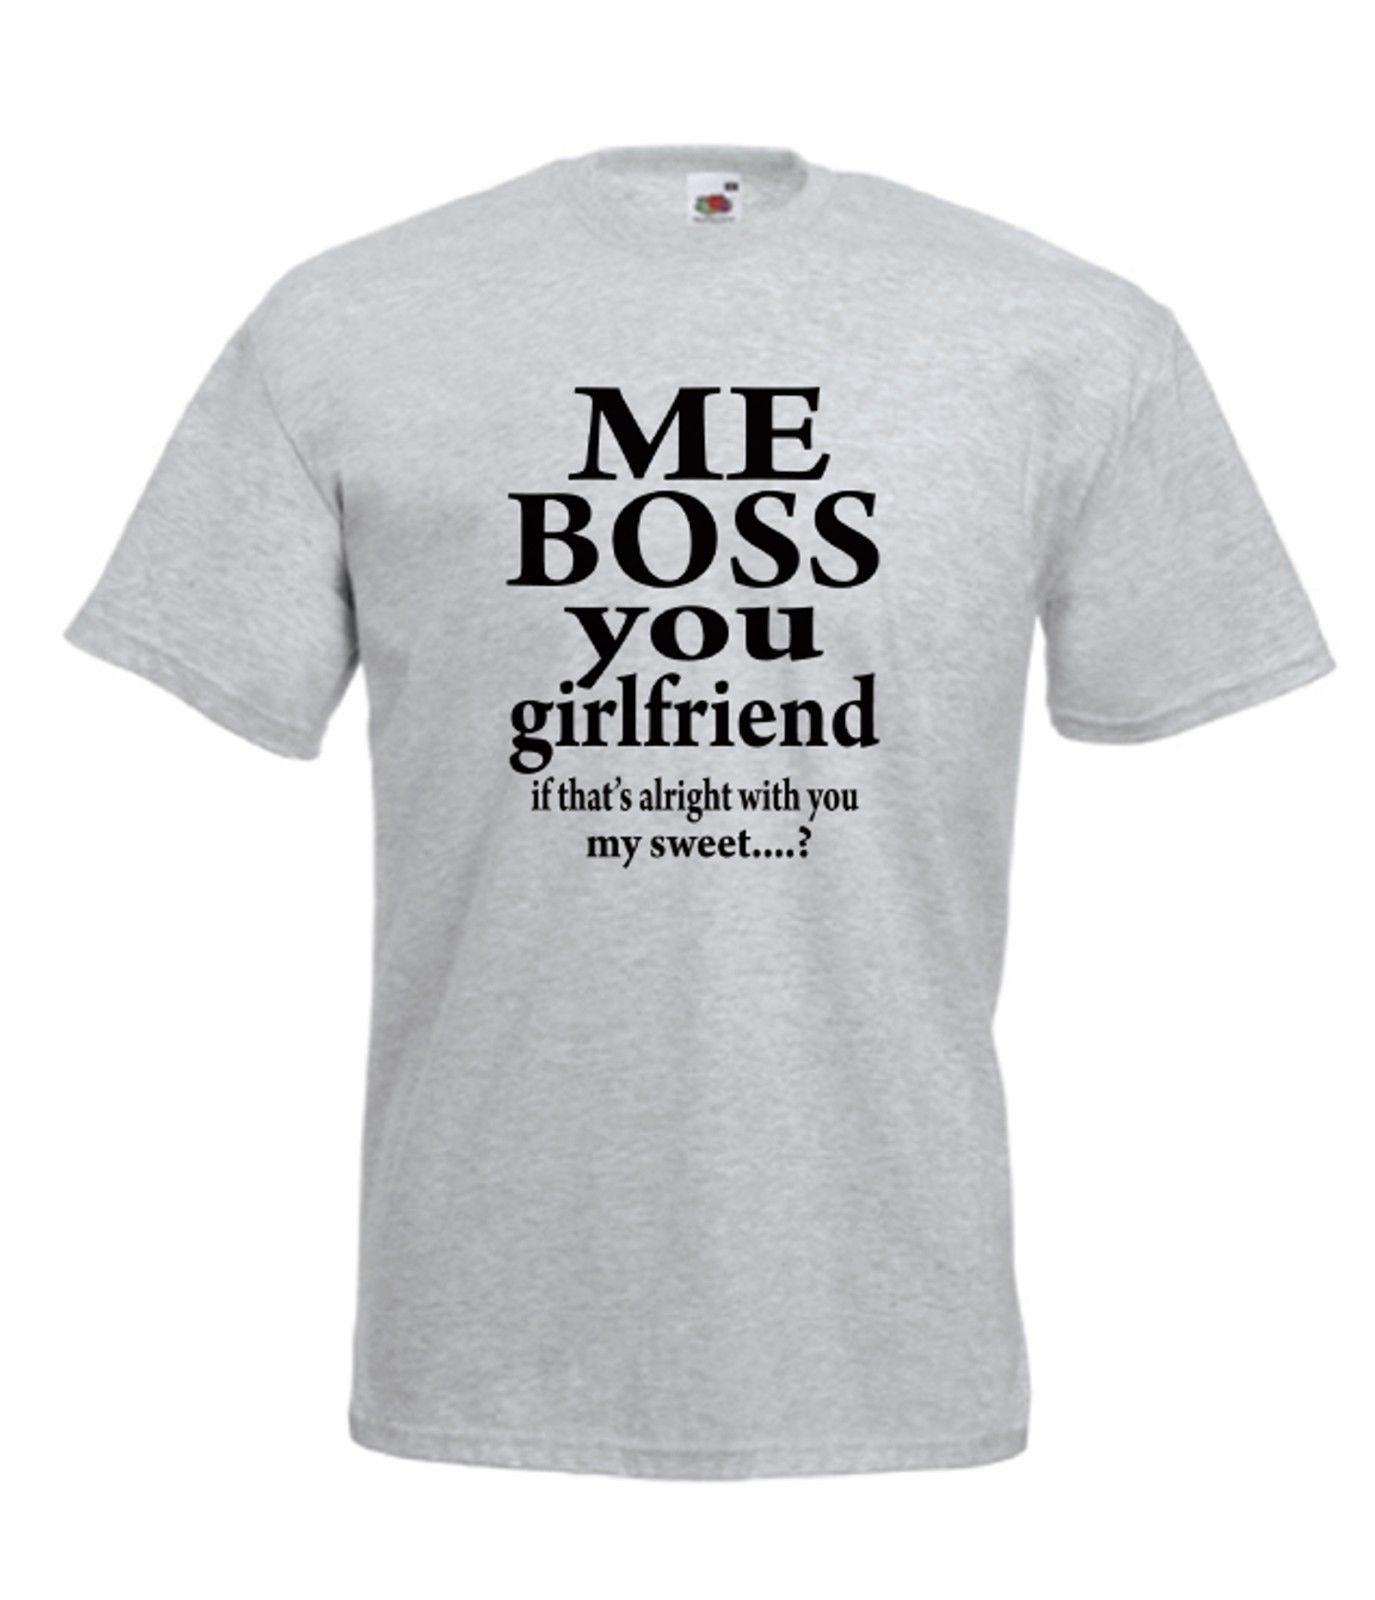 7fb408eaf ME BOSS GIRLFRIEND BOYFRIEND NEW Men Women T SHIRTS TOP Funny Casual Tee  Best T Shirts Design All T Shirt From Fatcuckoo, $12.96| DHgate.Com